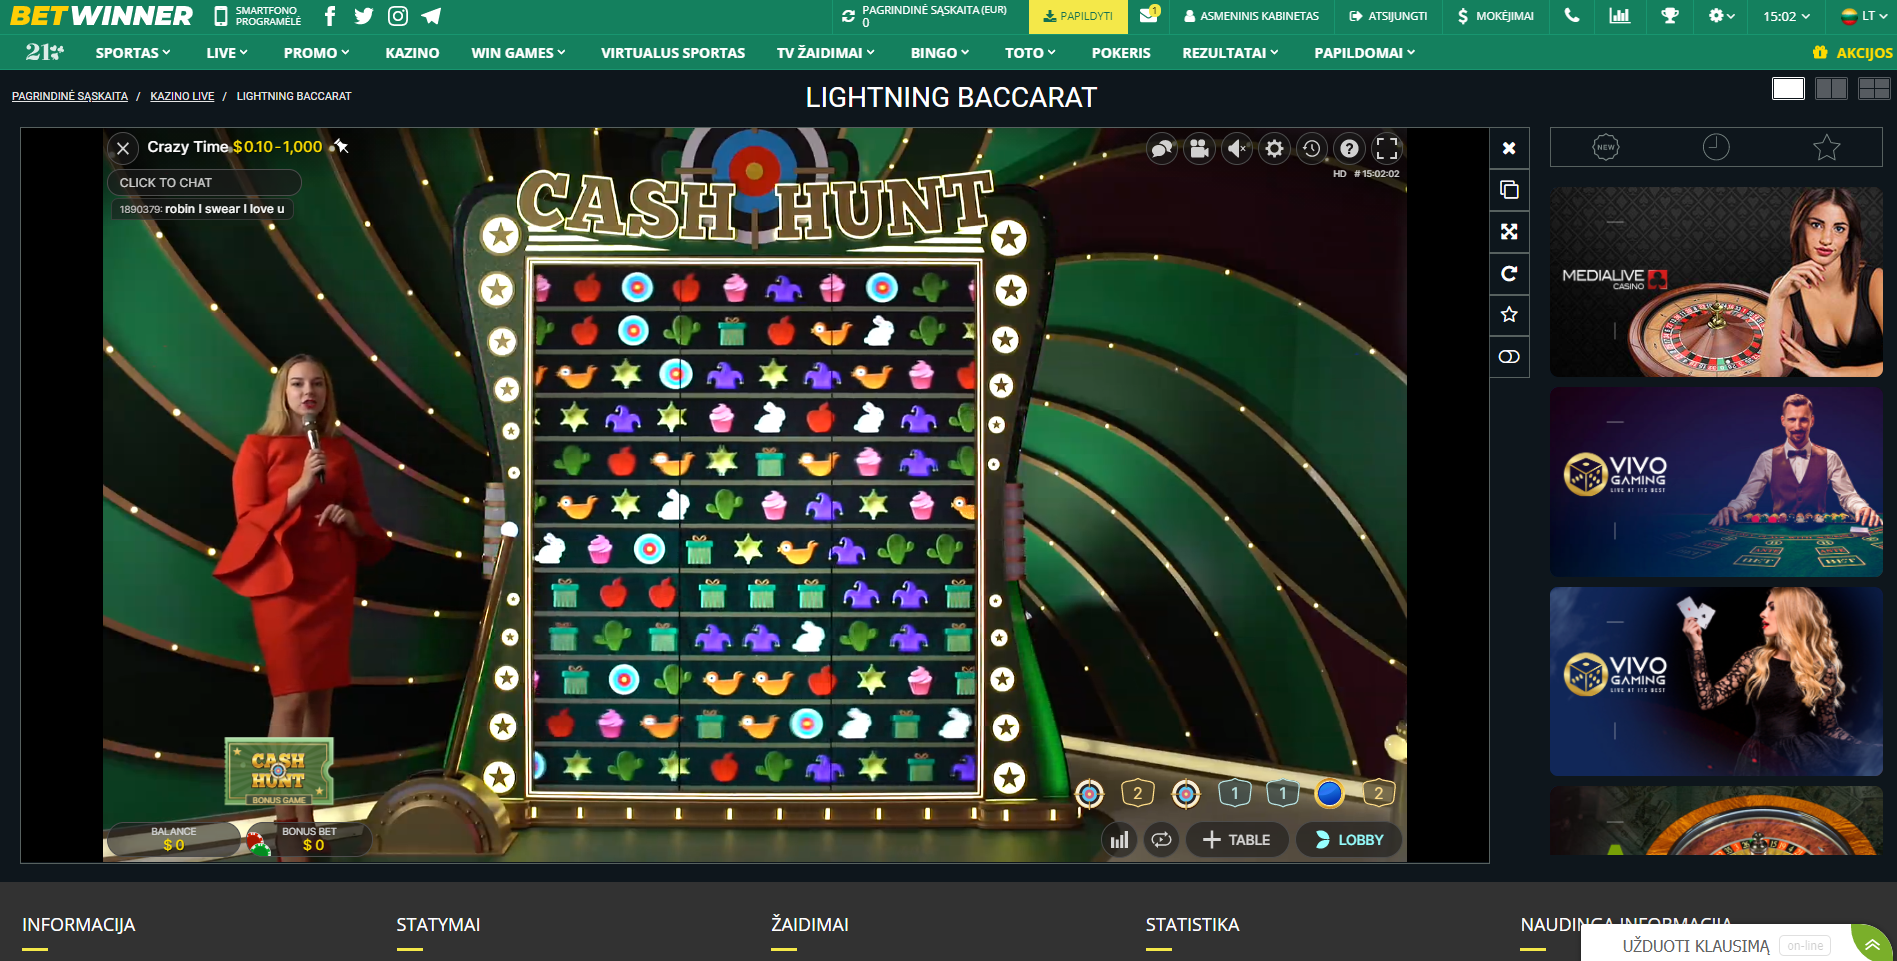 betwinner evolution gaming crazy time kazino žaidimas cash hunt žaidimo vedėja